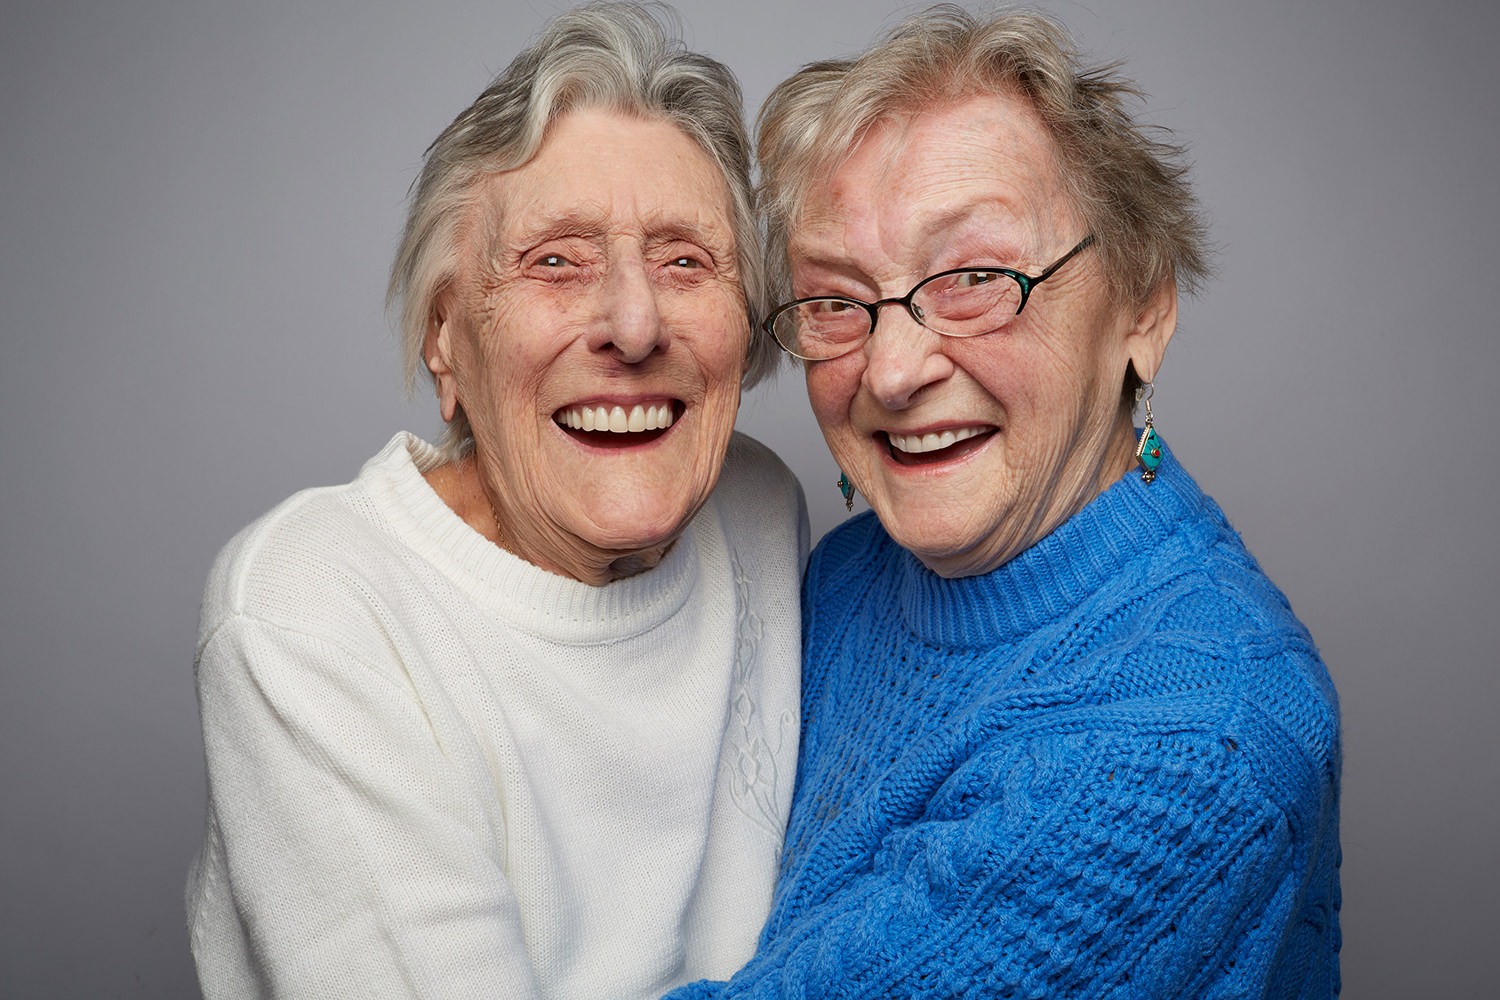 OPAL - OPAL works to reduce the loneliness and isolation of older people living in a wide area of north Leeds, as well as improving the quality of their lives by enabling them to live independently, safely and healthily. The charity gives practical and emotional support to 700 older people.